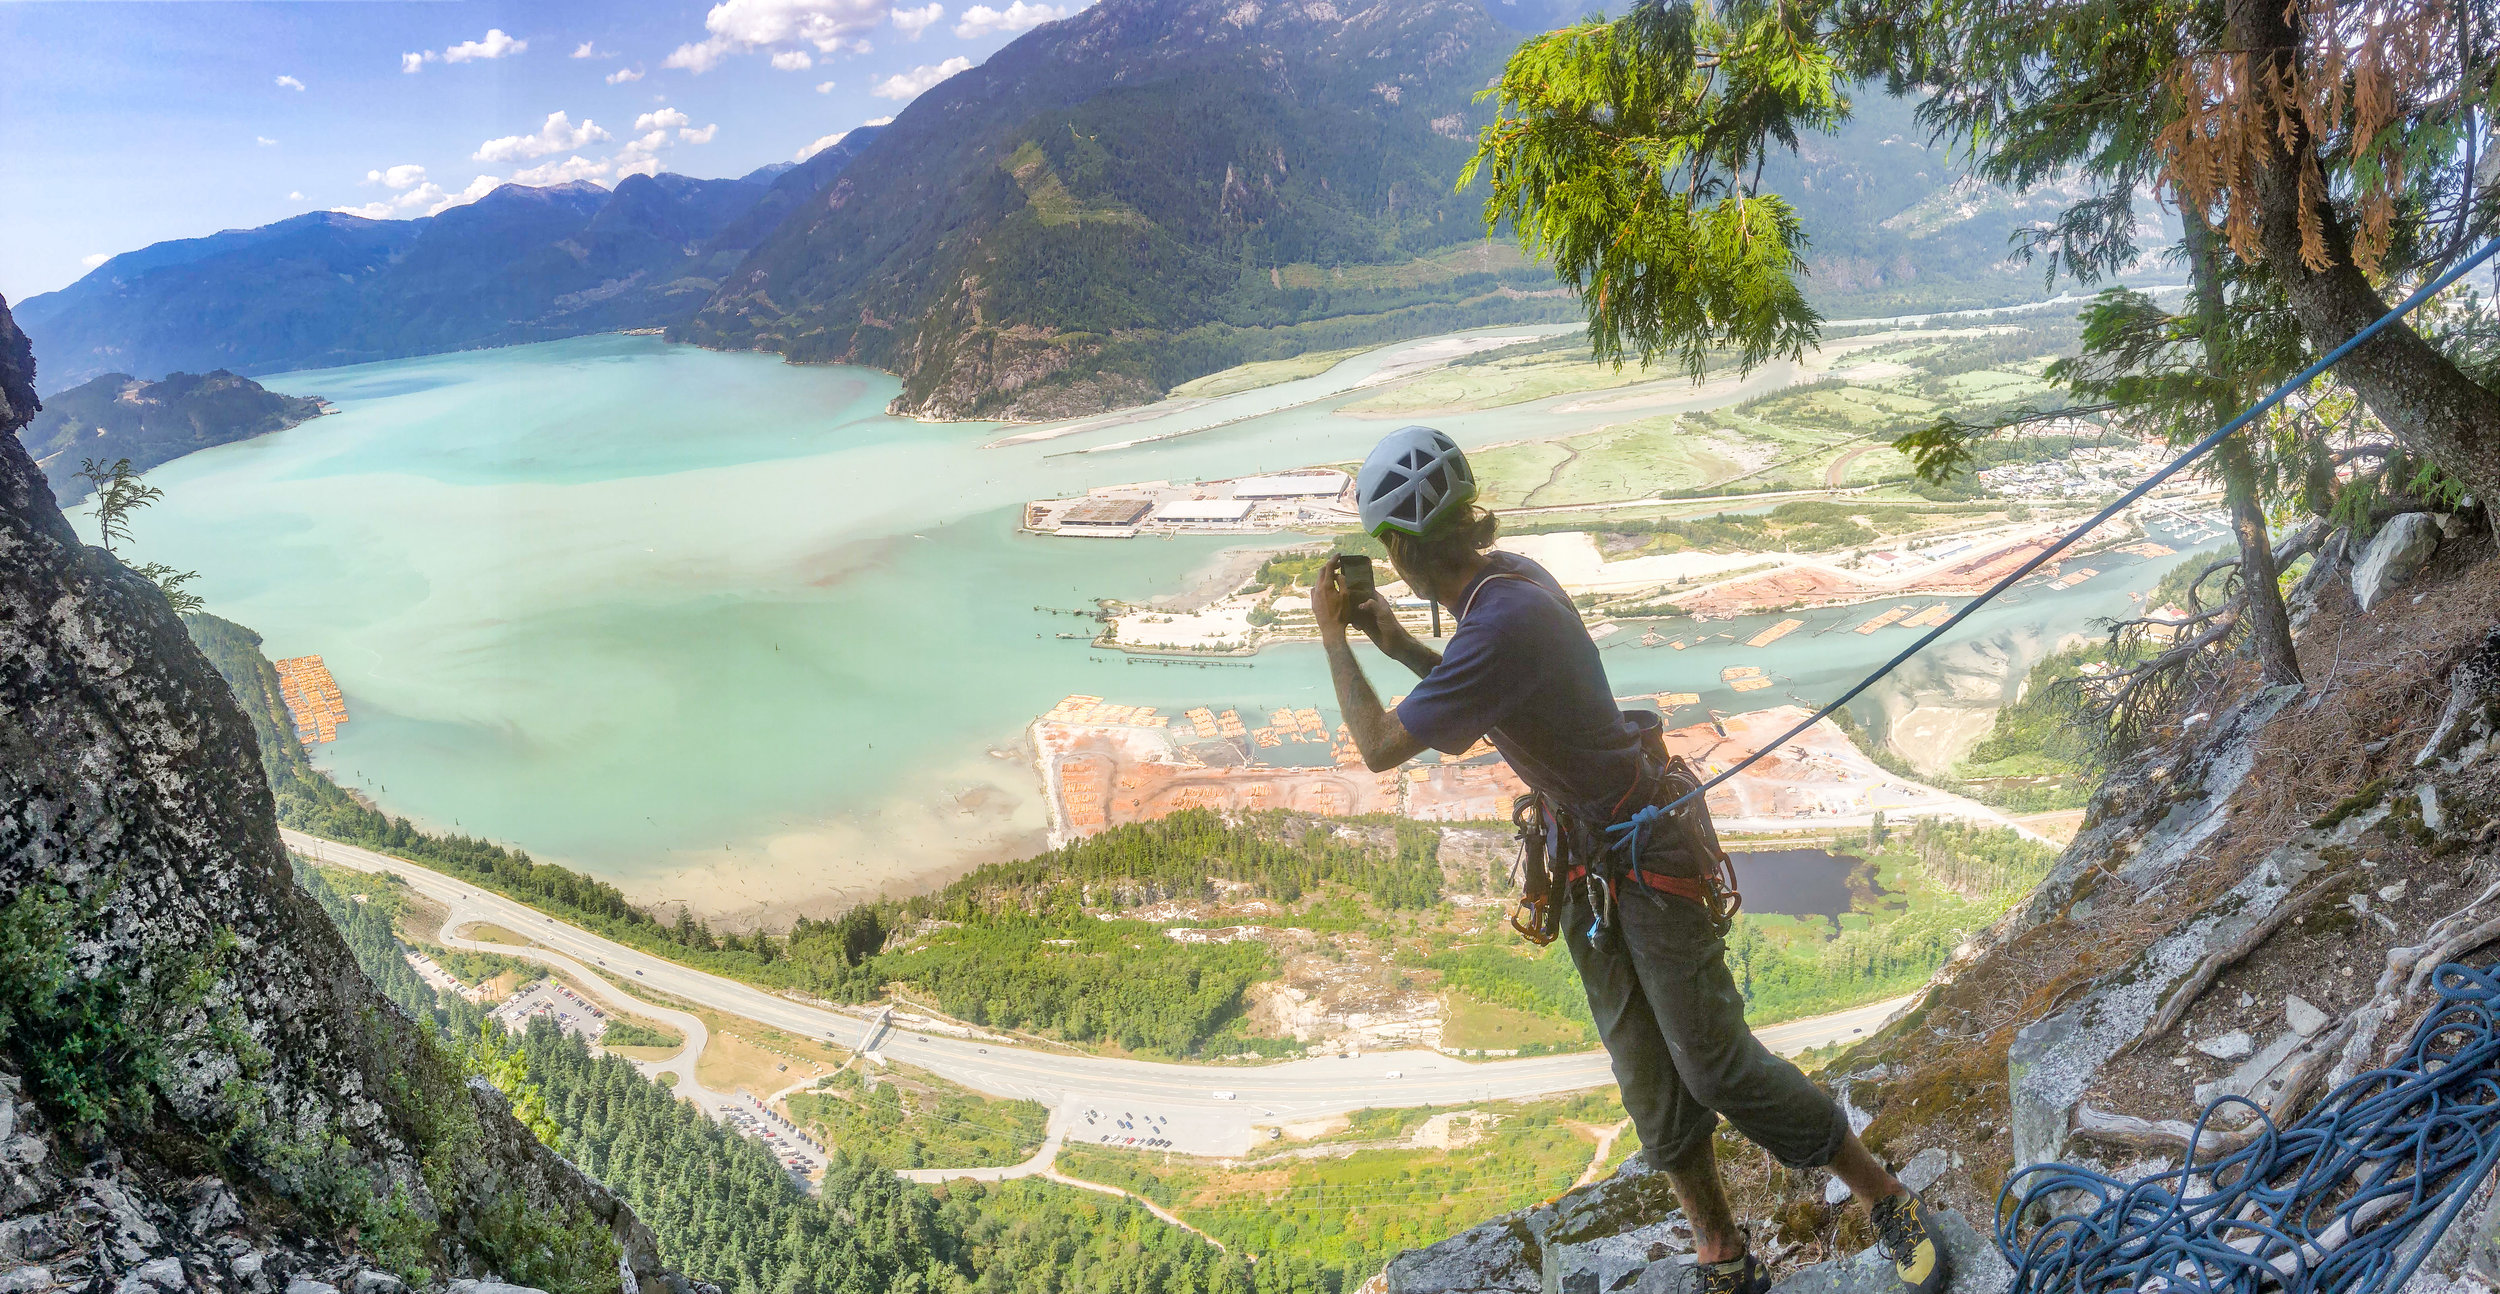 Squamish on a clear day